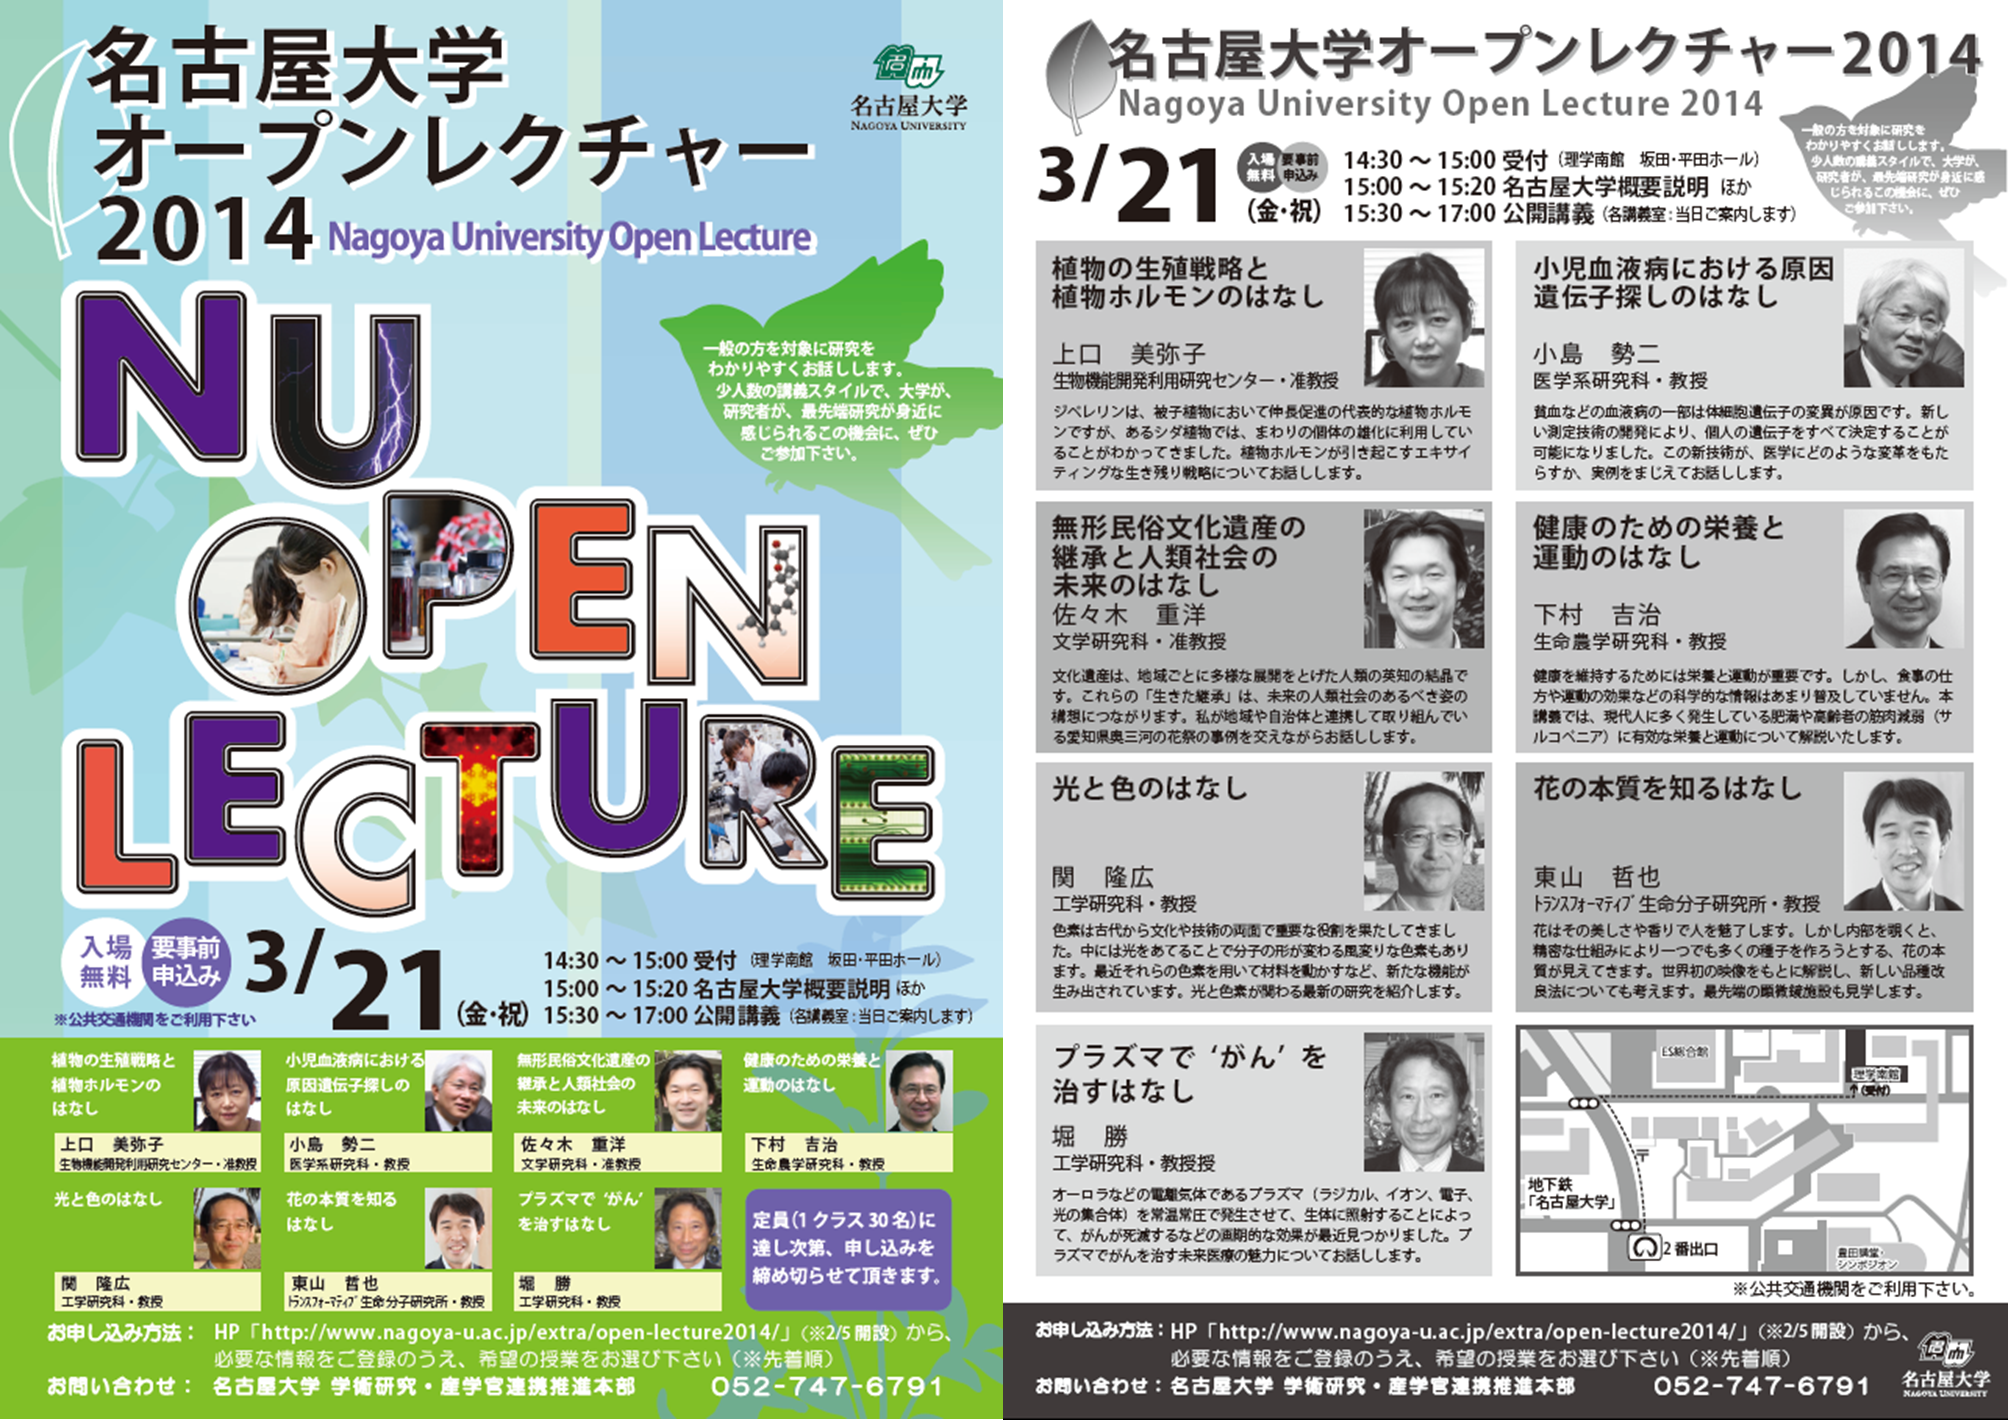 http://www.liveholonics.com/info/files/2014openlecture.png